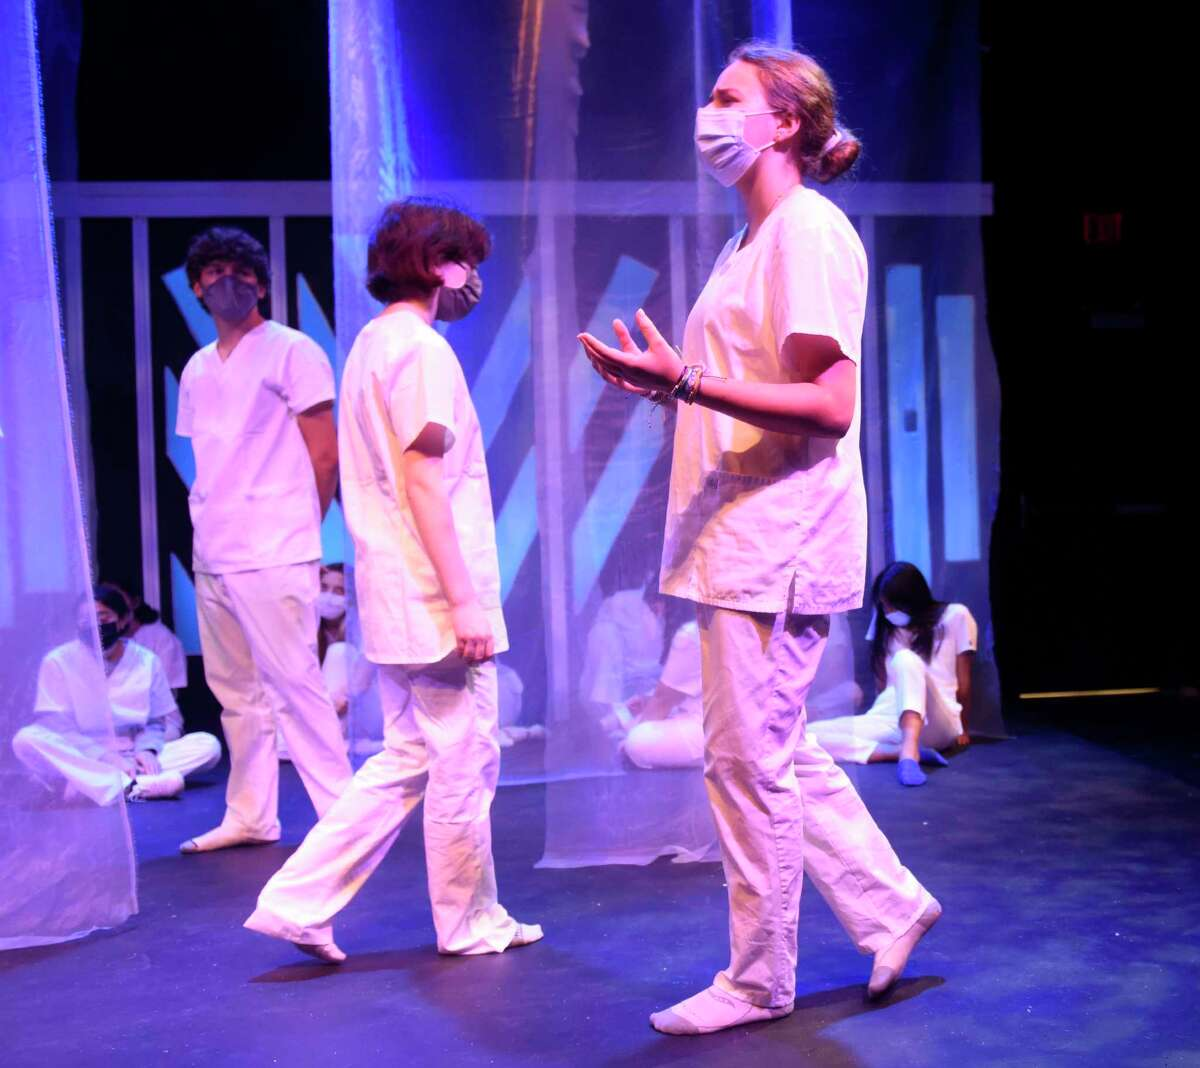 """GHS junior Abigail White performs the role of Cassius at the rehearsal of """"Julius Caesar"""" at Greenwich High School's Blackbox Theater in Greenwich, Conn. Monday, Oct. 11, 2021. GHS Theater Arts will perform the renowned Shakespeare tragedy """"Julius Caesar"""" on Oct. 15-16 and Oct. 21-23. This will be the performance in a year and a half at the school's smaller Blackbox Theater."""